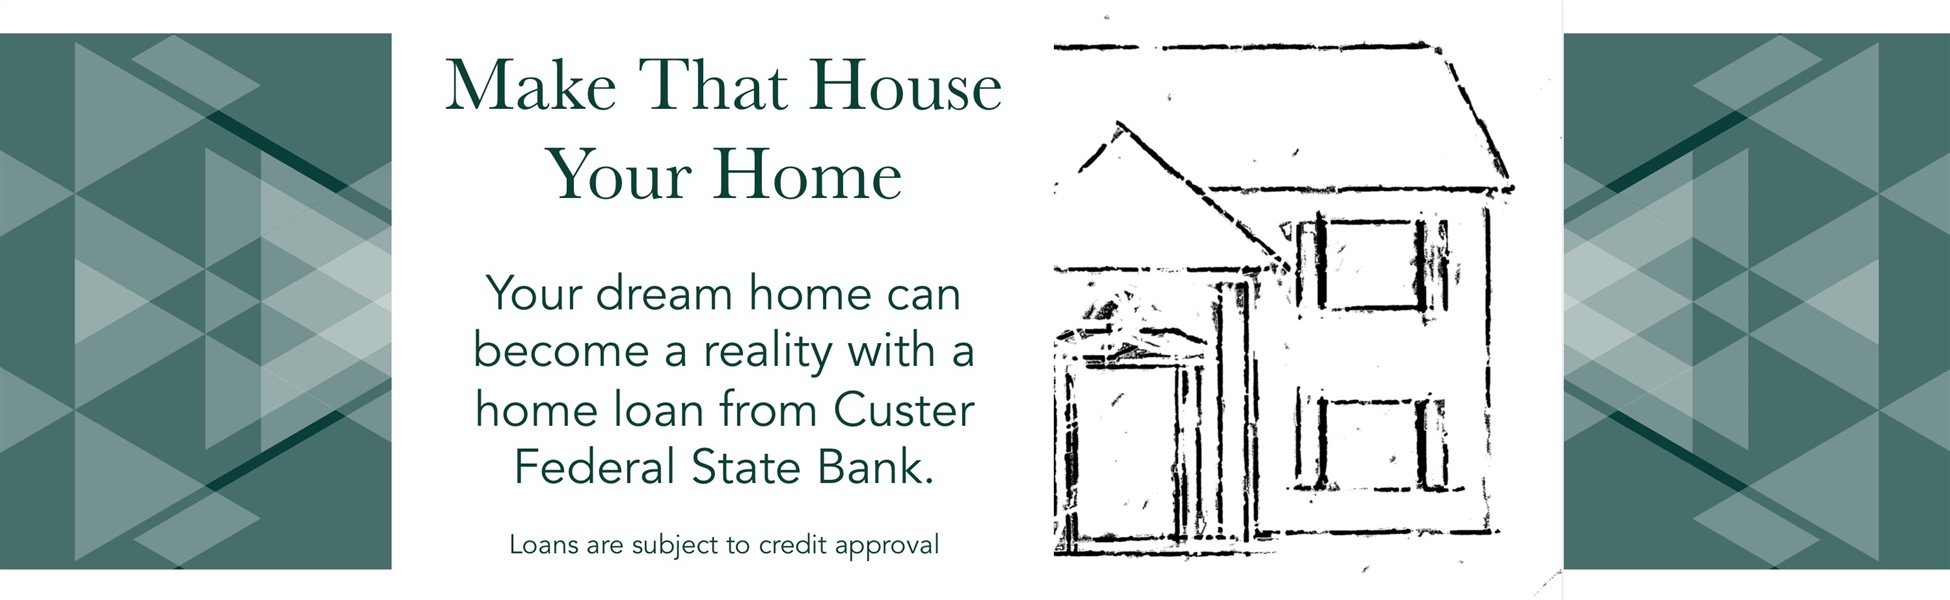 Home Loans through Custer Federal State Bank